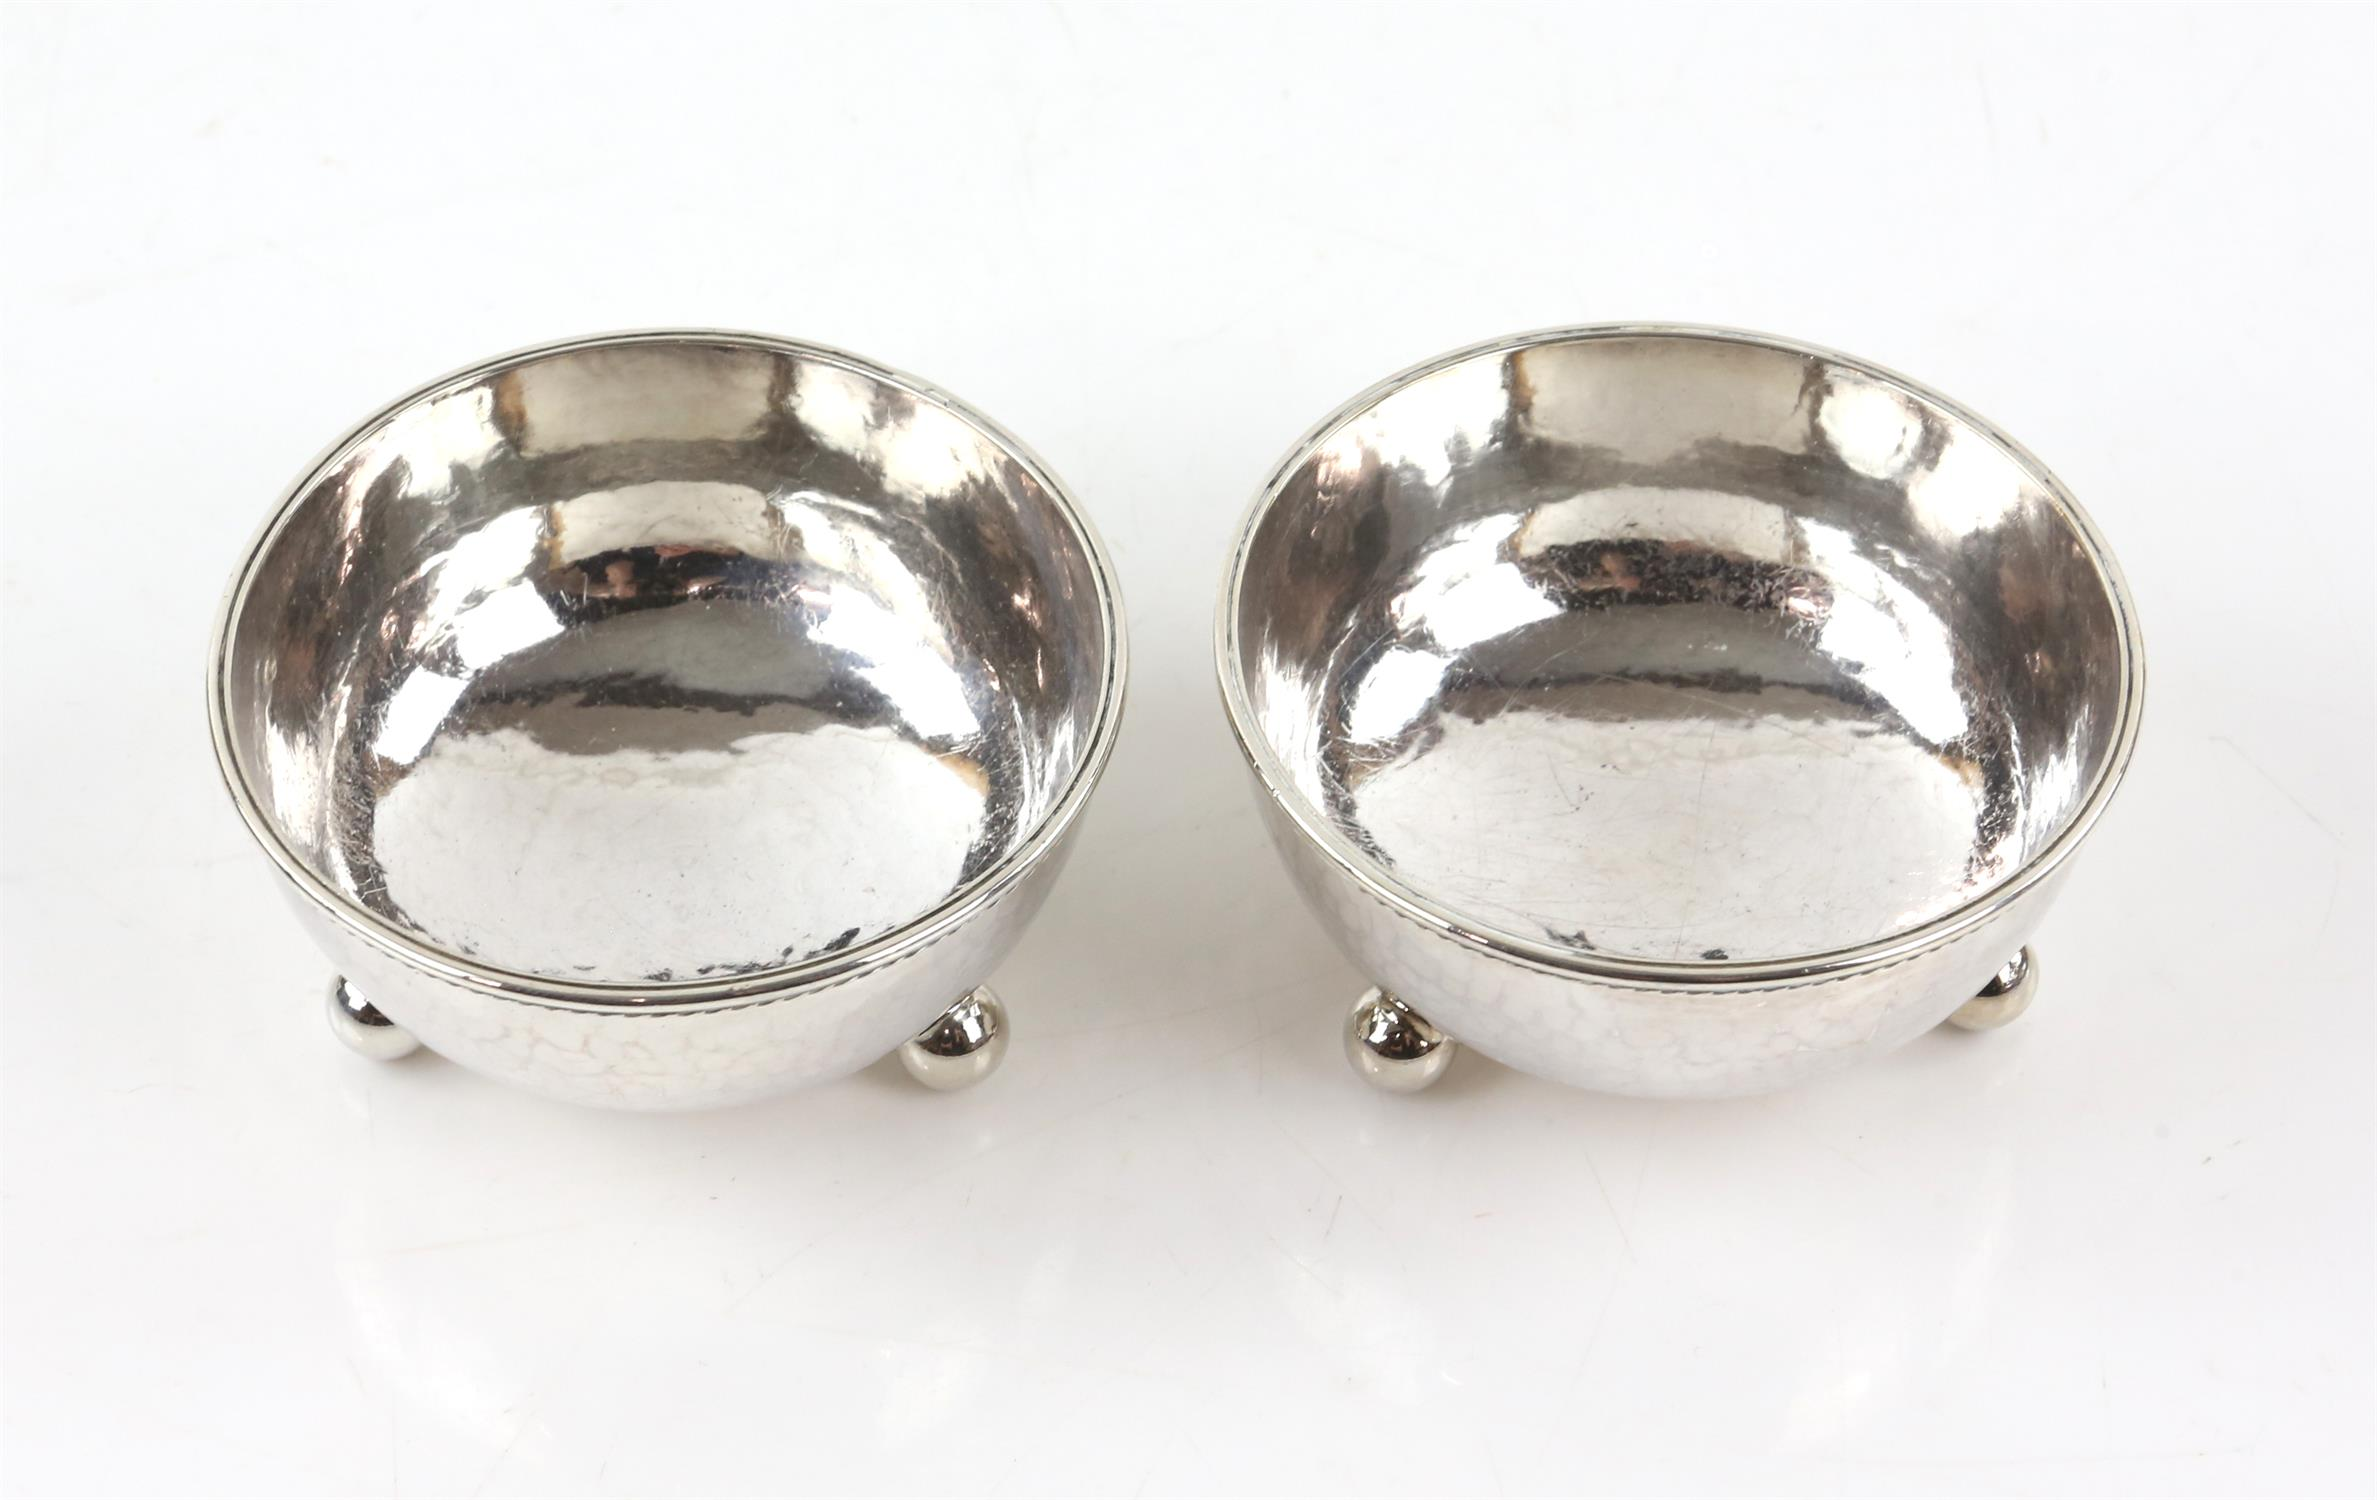 Pair of George V silver bonbon dishes with gadrooned borders, each on three ball feet, - Image 2 of 4